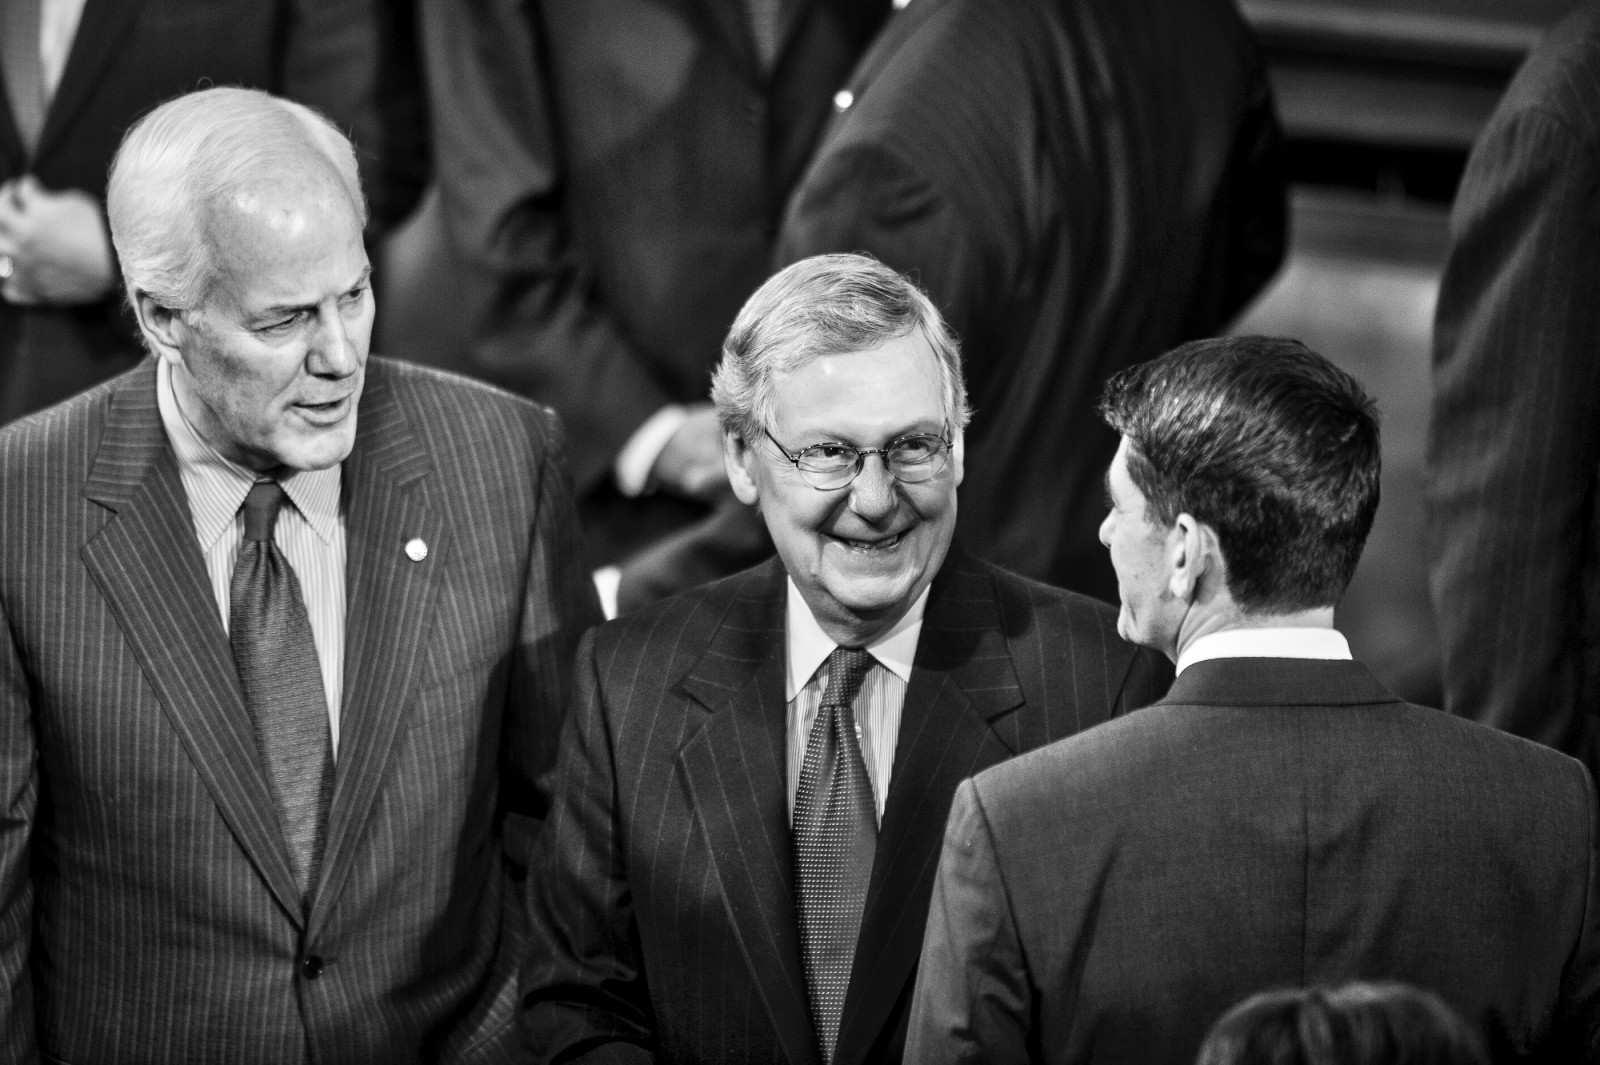 Senator John Cornyn (R-TX) looks on as Senate Majority Leader Mitch McConnell (R-KY) talks with Rep. Paul Ryan (R-WI) before U.S. President Barack Obama delivers the State of the Union address to a joint session of Congress at the Capitol in Washington, District of Columbia, U.S., on Tuesday, Jan. 20, 2015.